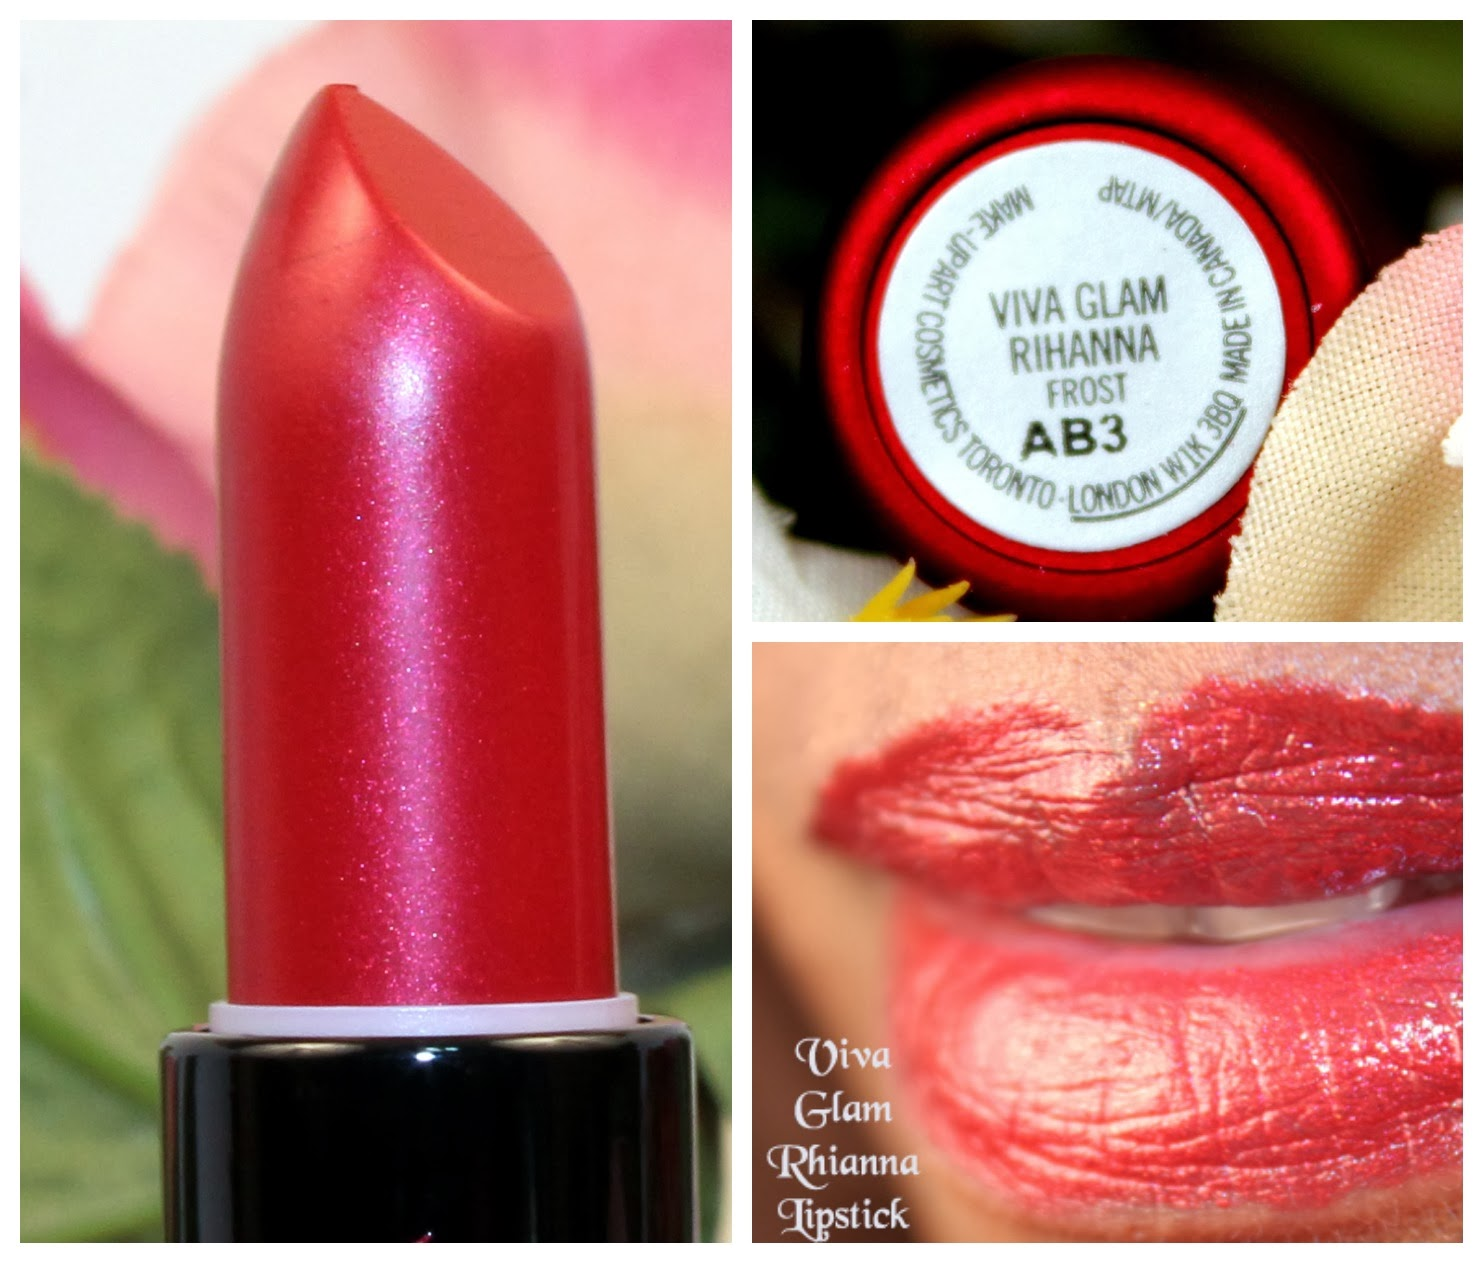 Mac Viva Glam Rihanna Lipstick and Lipglass